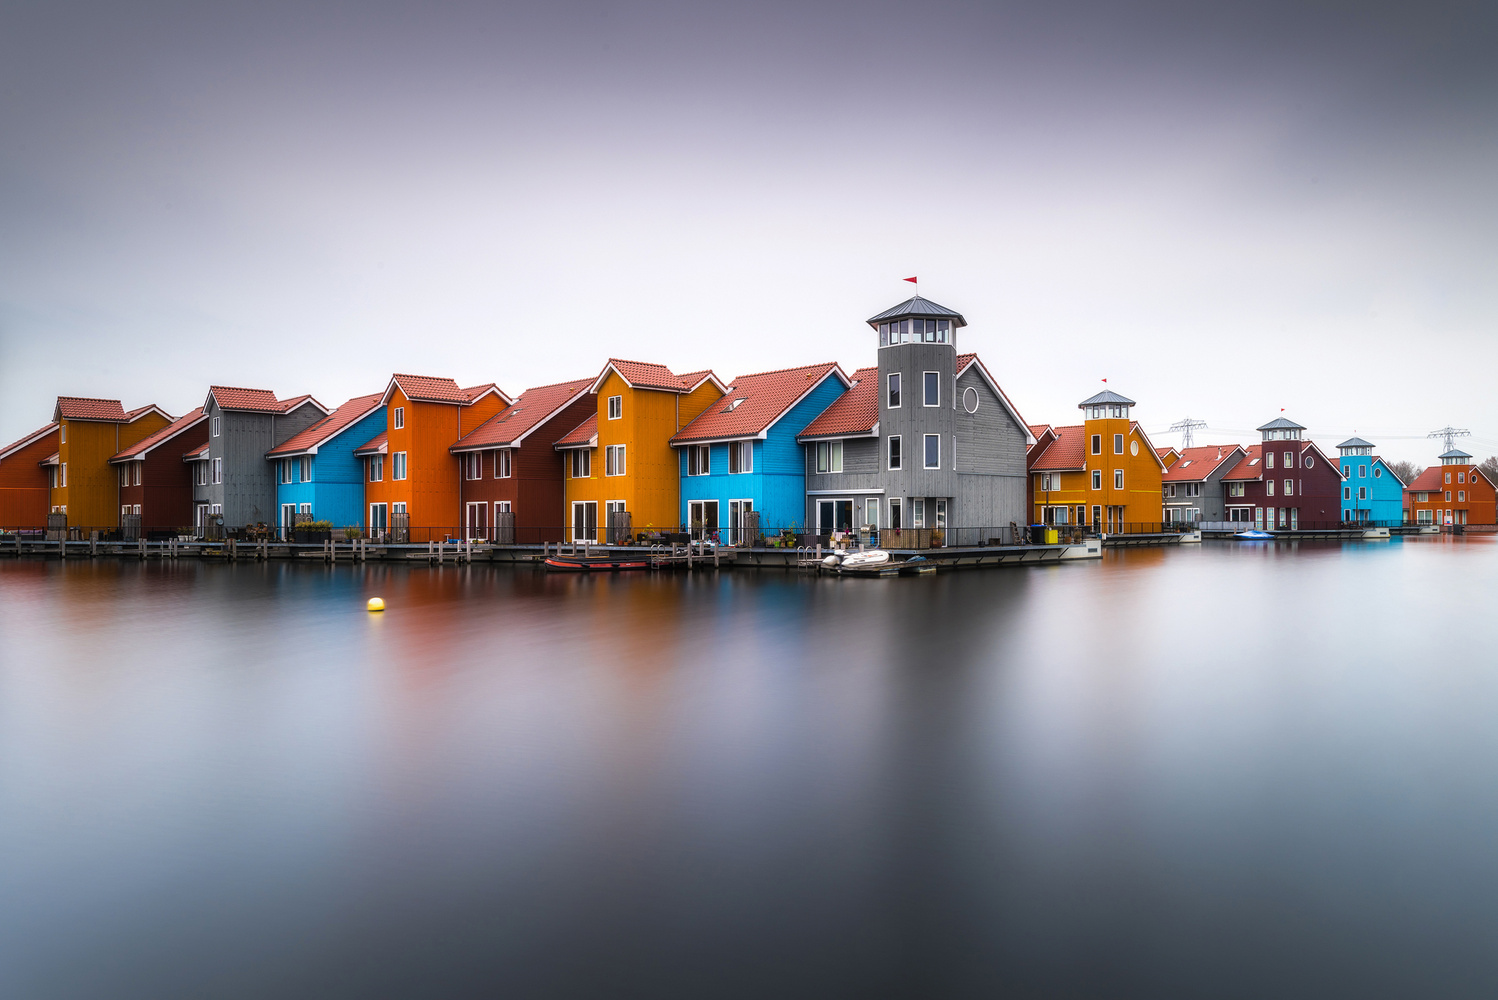 Reitdiephaven by Philip Slotte